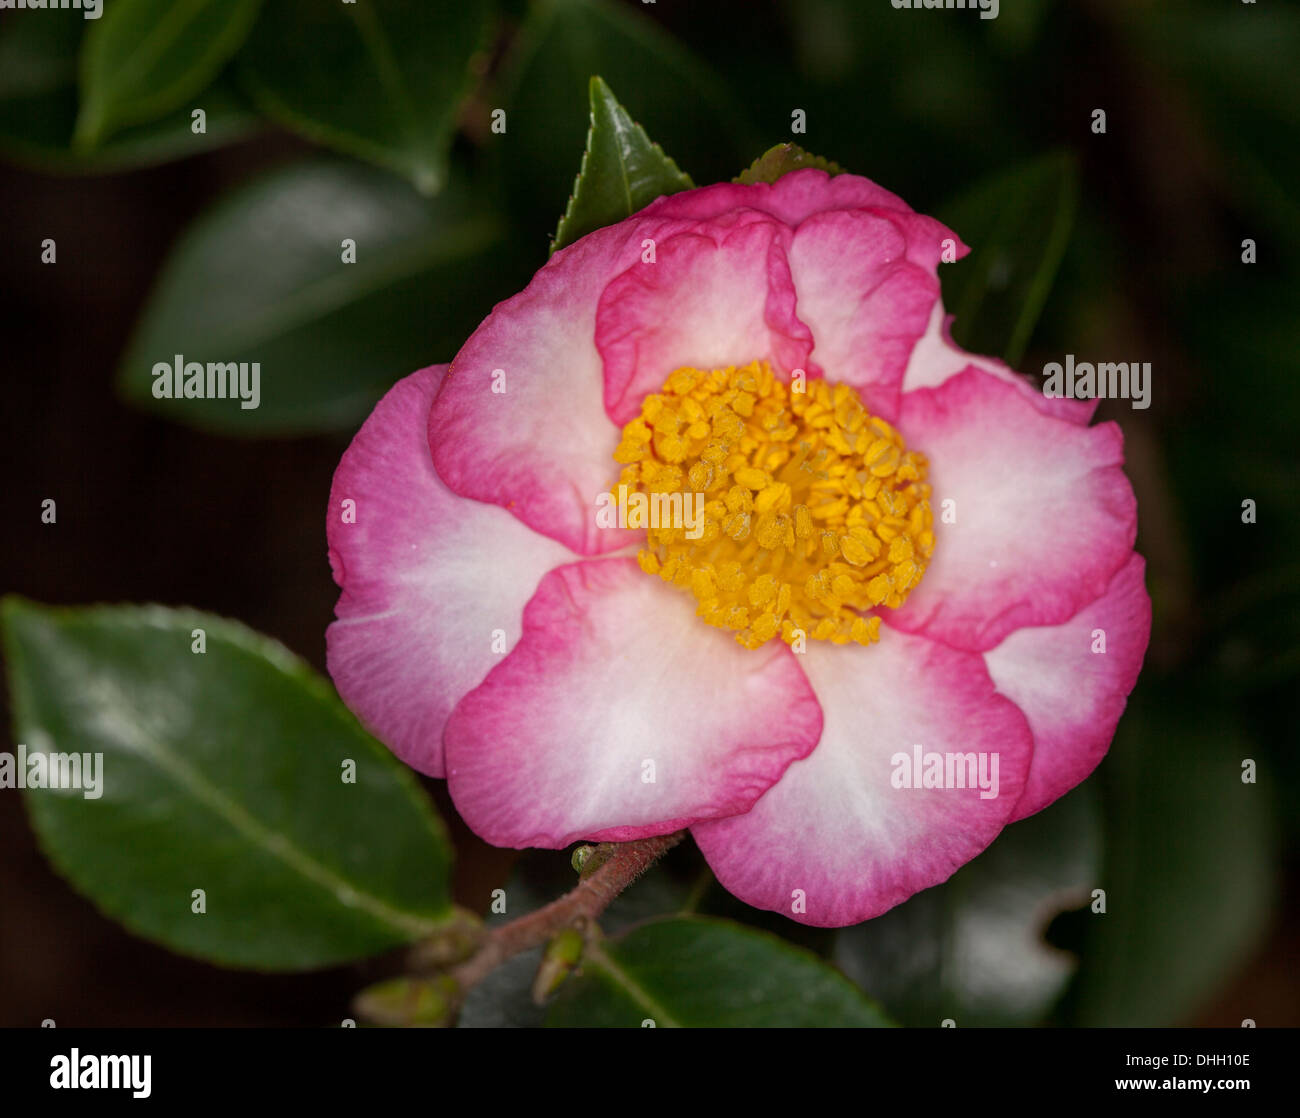 Spectacular pink and white flower and dark green leaves of unusual Camellia sasanqua cultivar 'Something Special' on dark background - Stock Image